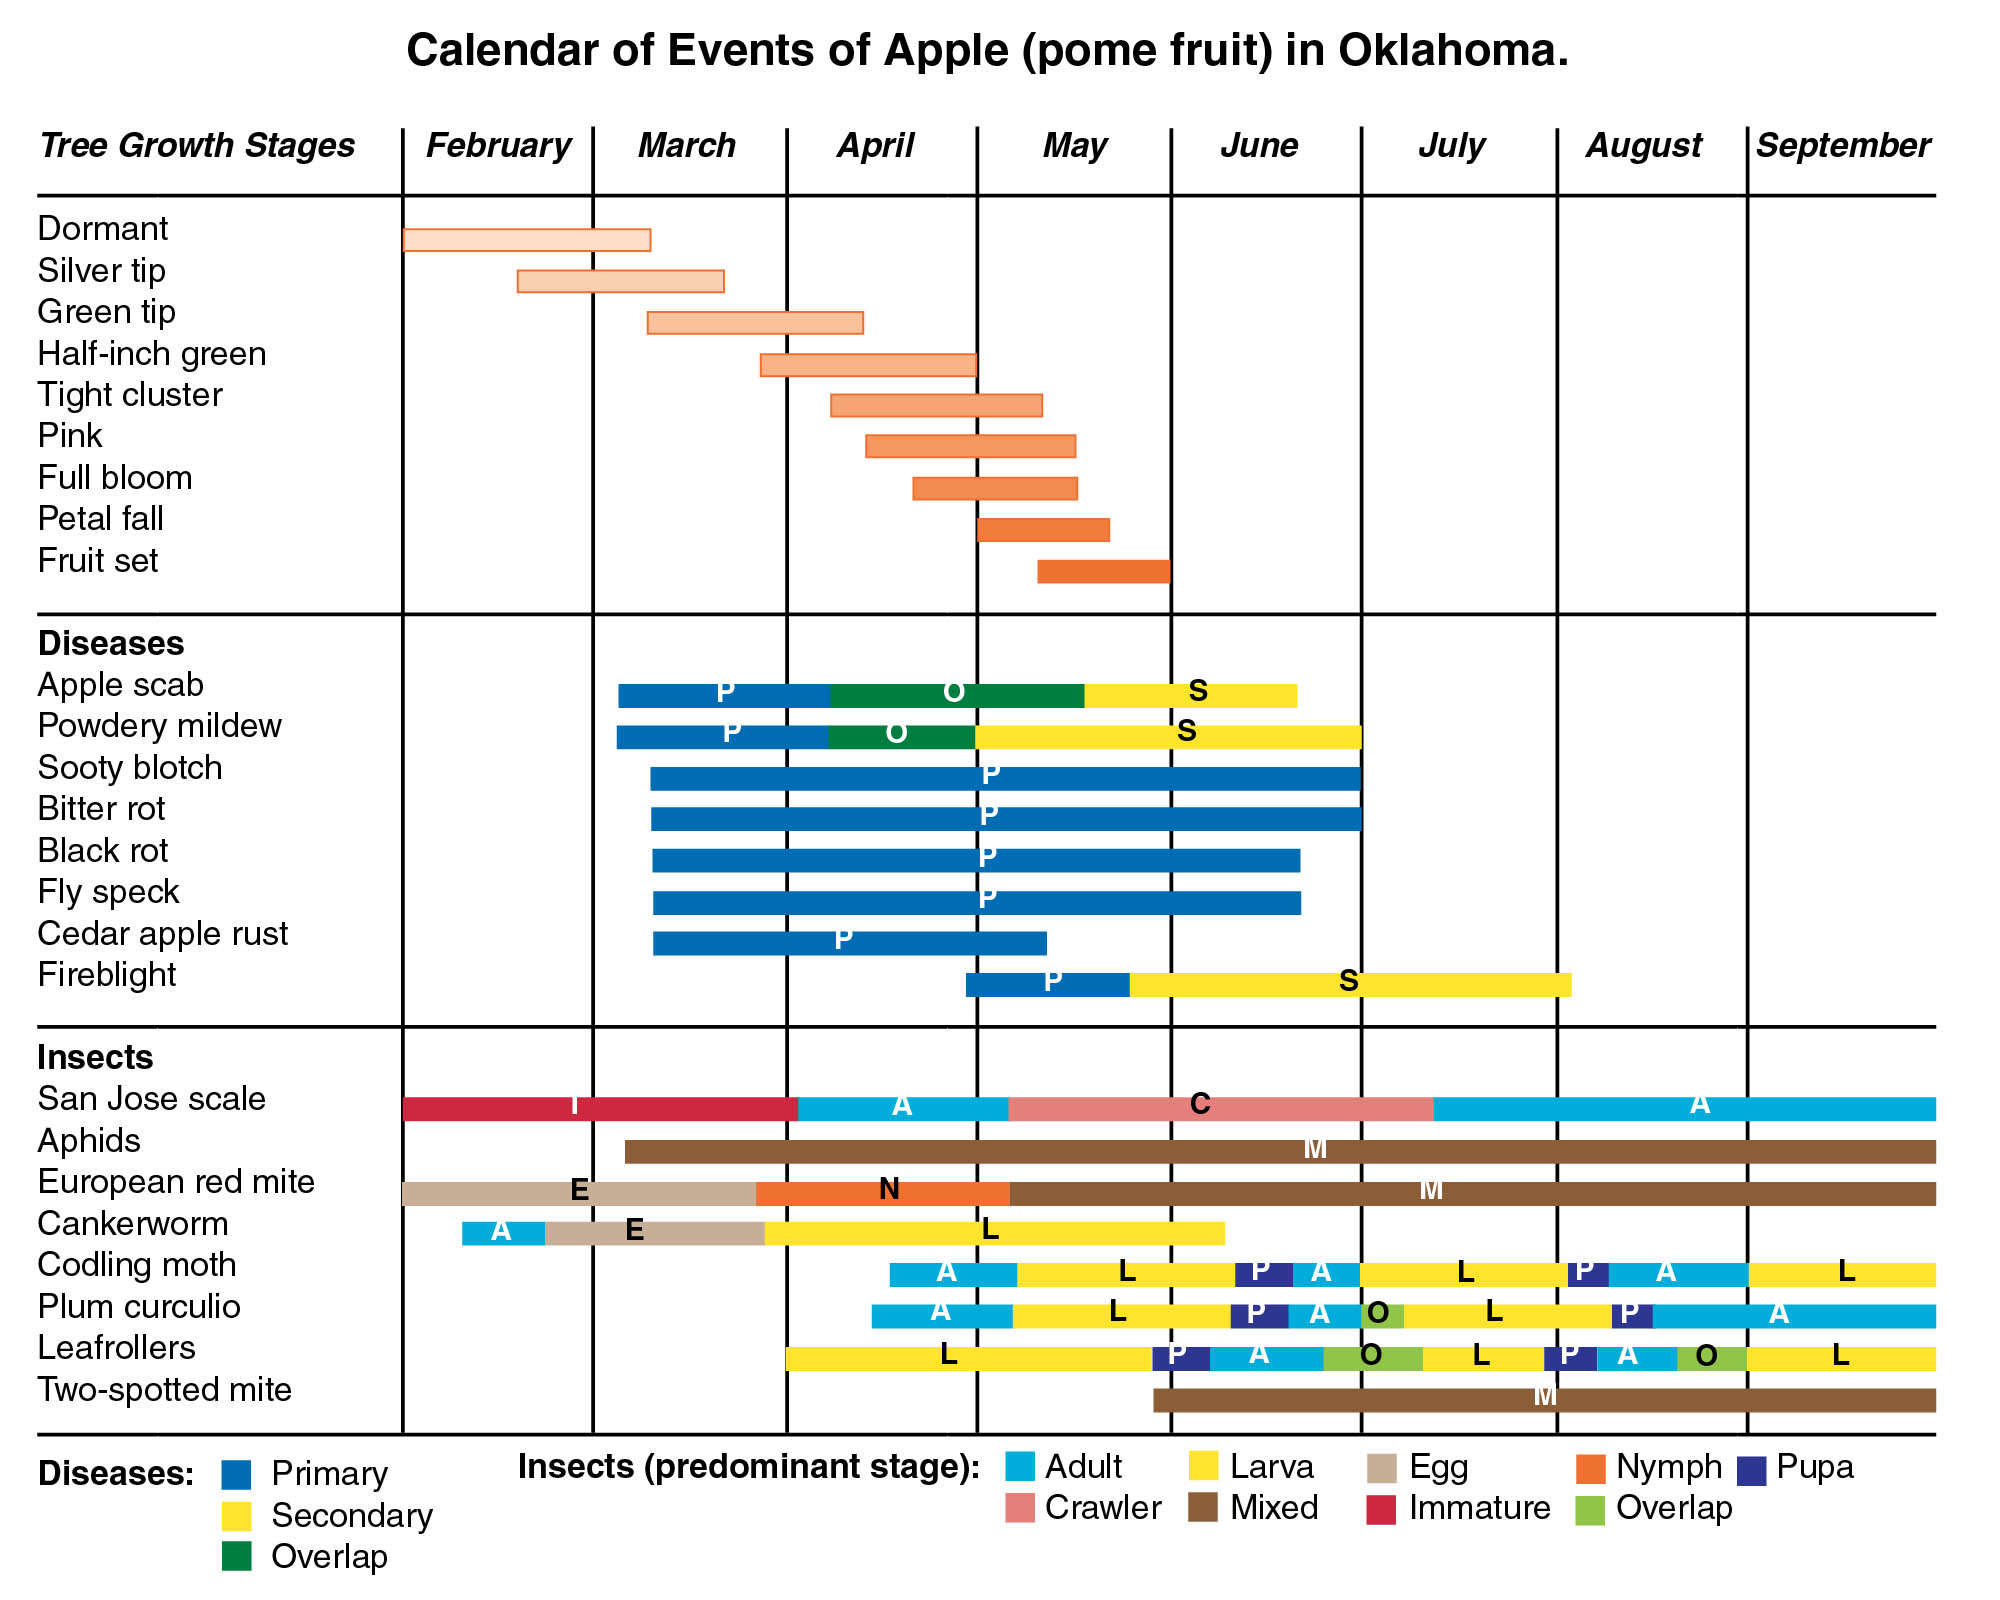 The calendar of events for an apple February through September for tree growth stages, diseases and insects.